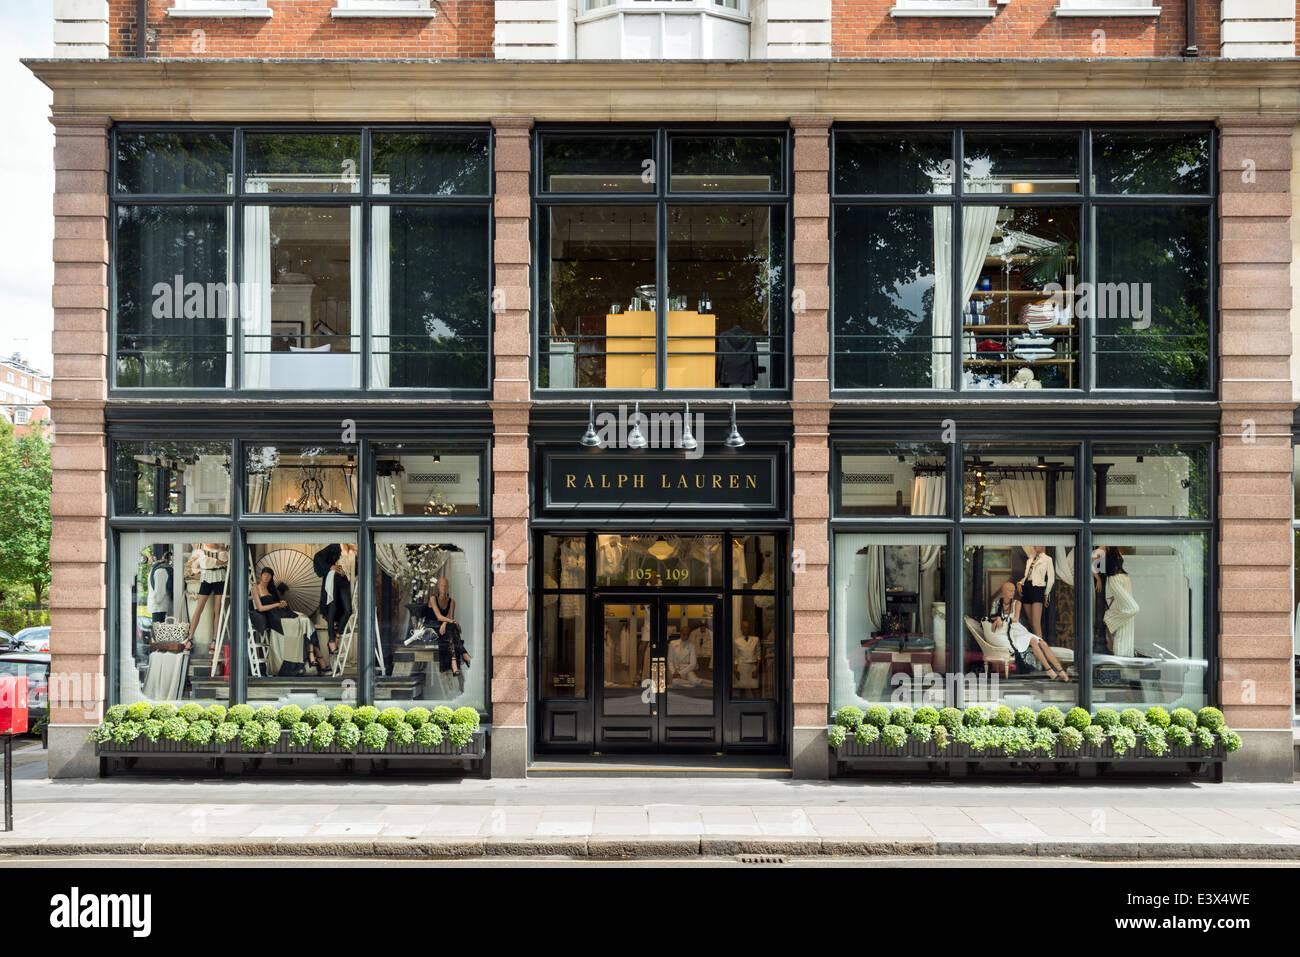 Ralph Lauren shop on Fulham Road, Chelsea, London, England, UK - Stock Image